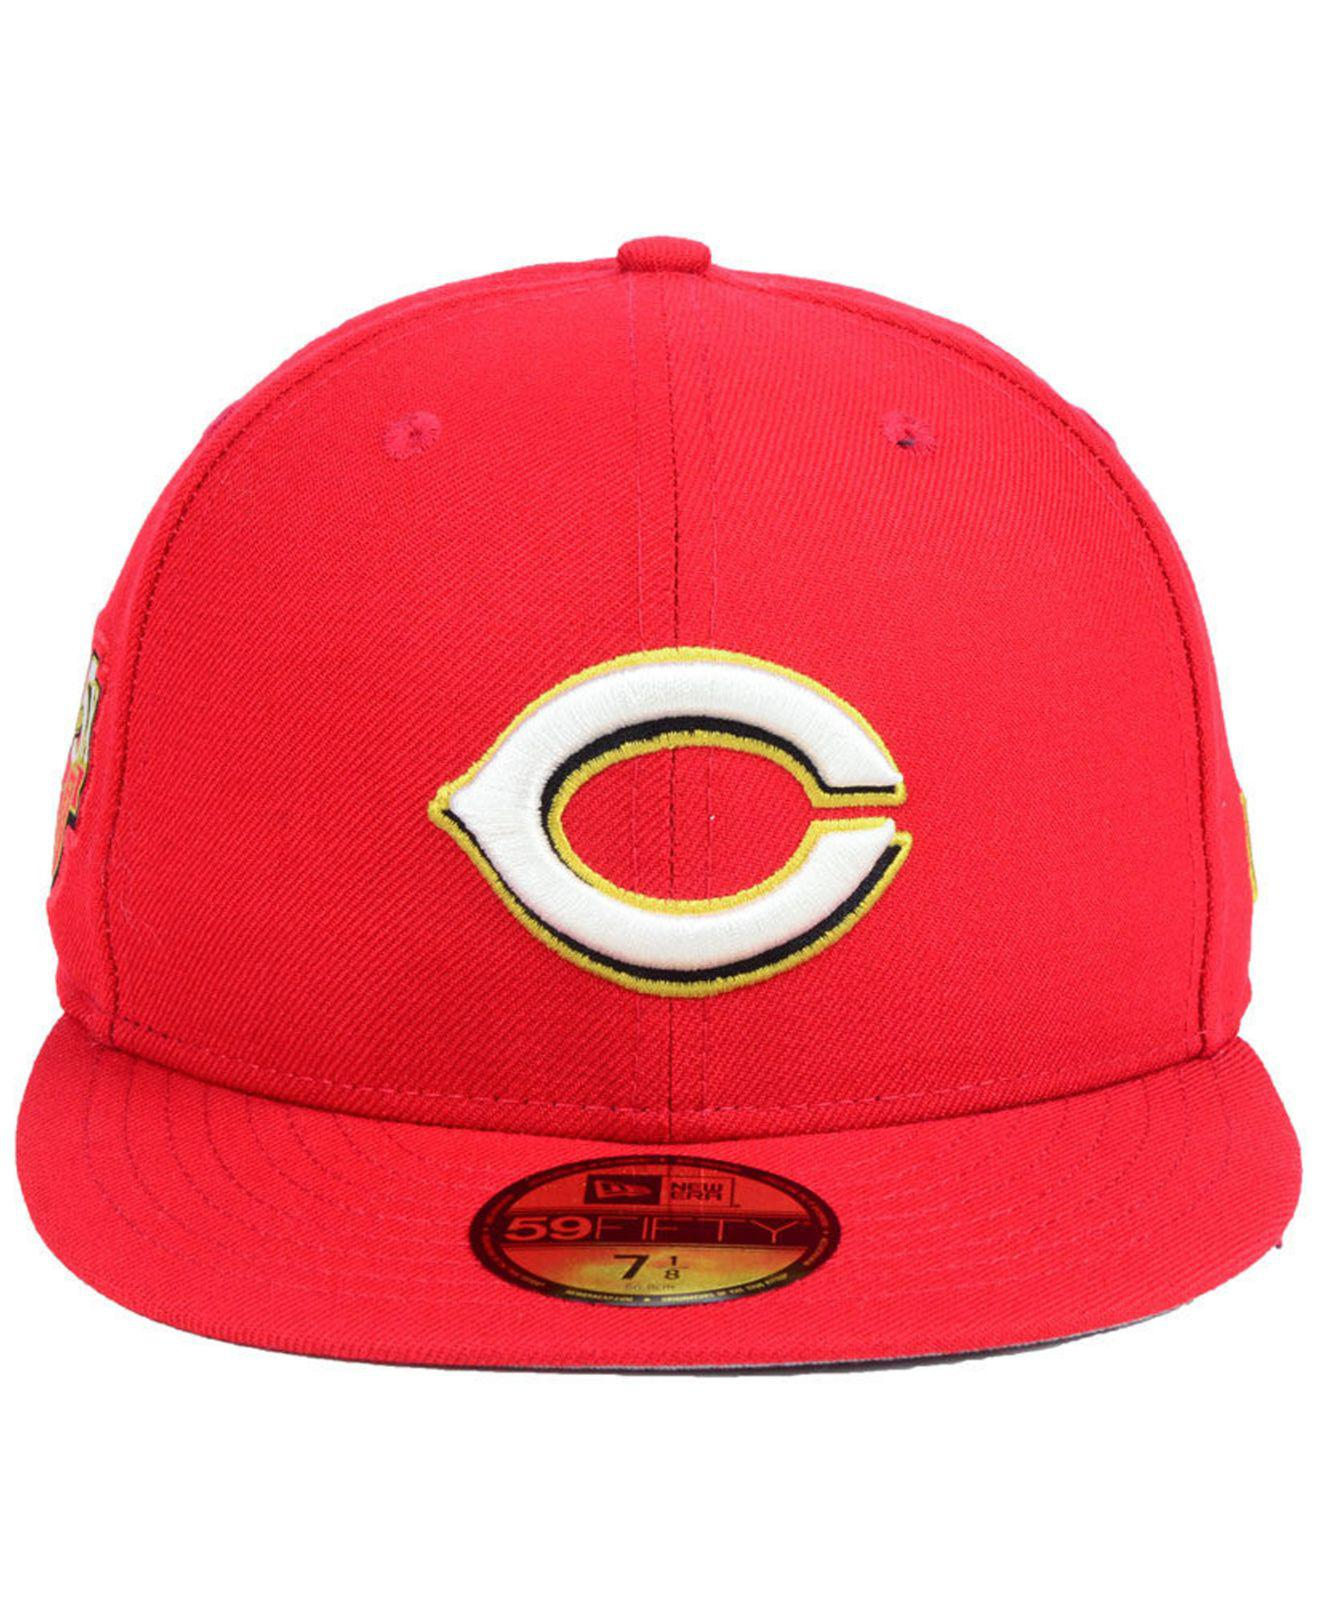 6d7a05898c8 Lyst - Ktz Cincinnati Reds Trophy Patch 59fifty Fitted Cap in Red for Men